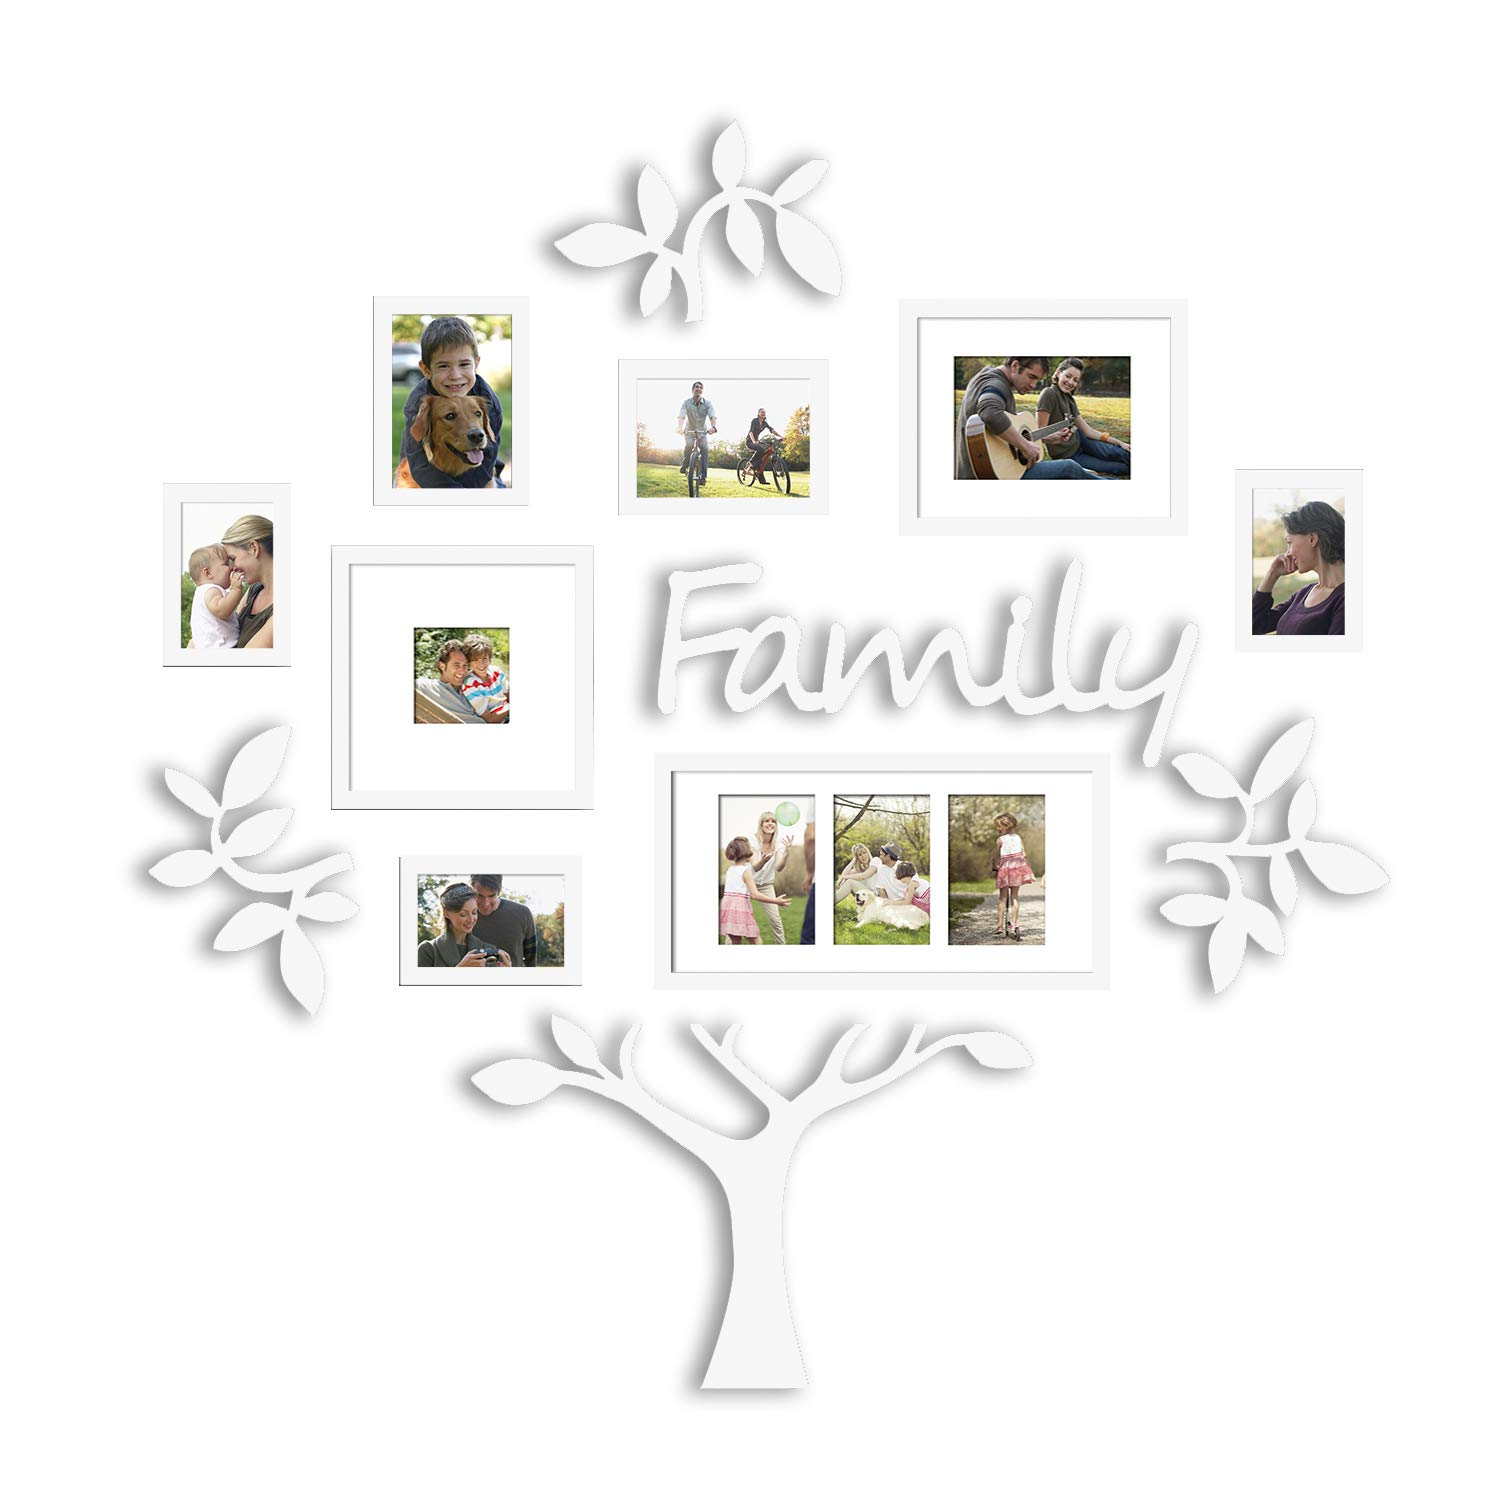 Hello Laura - Photo Frame Family Theme Set Black - Picture Frame Gallery Collection Display Tree Shape Ready to Hang Stand with Built in Easel (13PCS White Tree) by Hello Laura